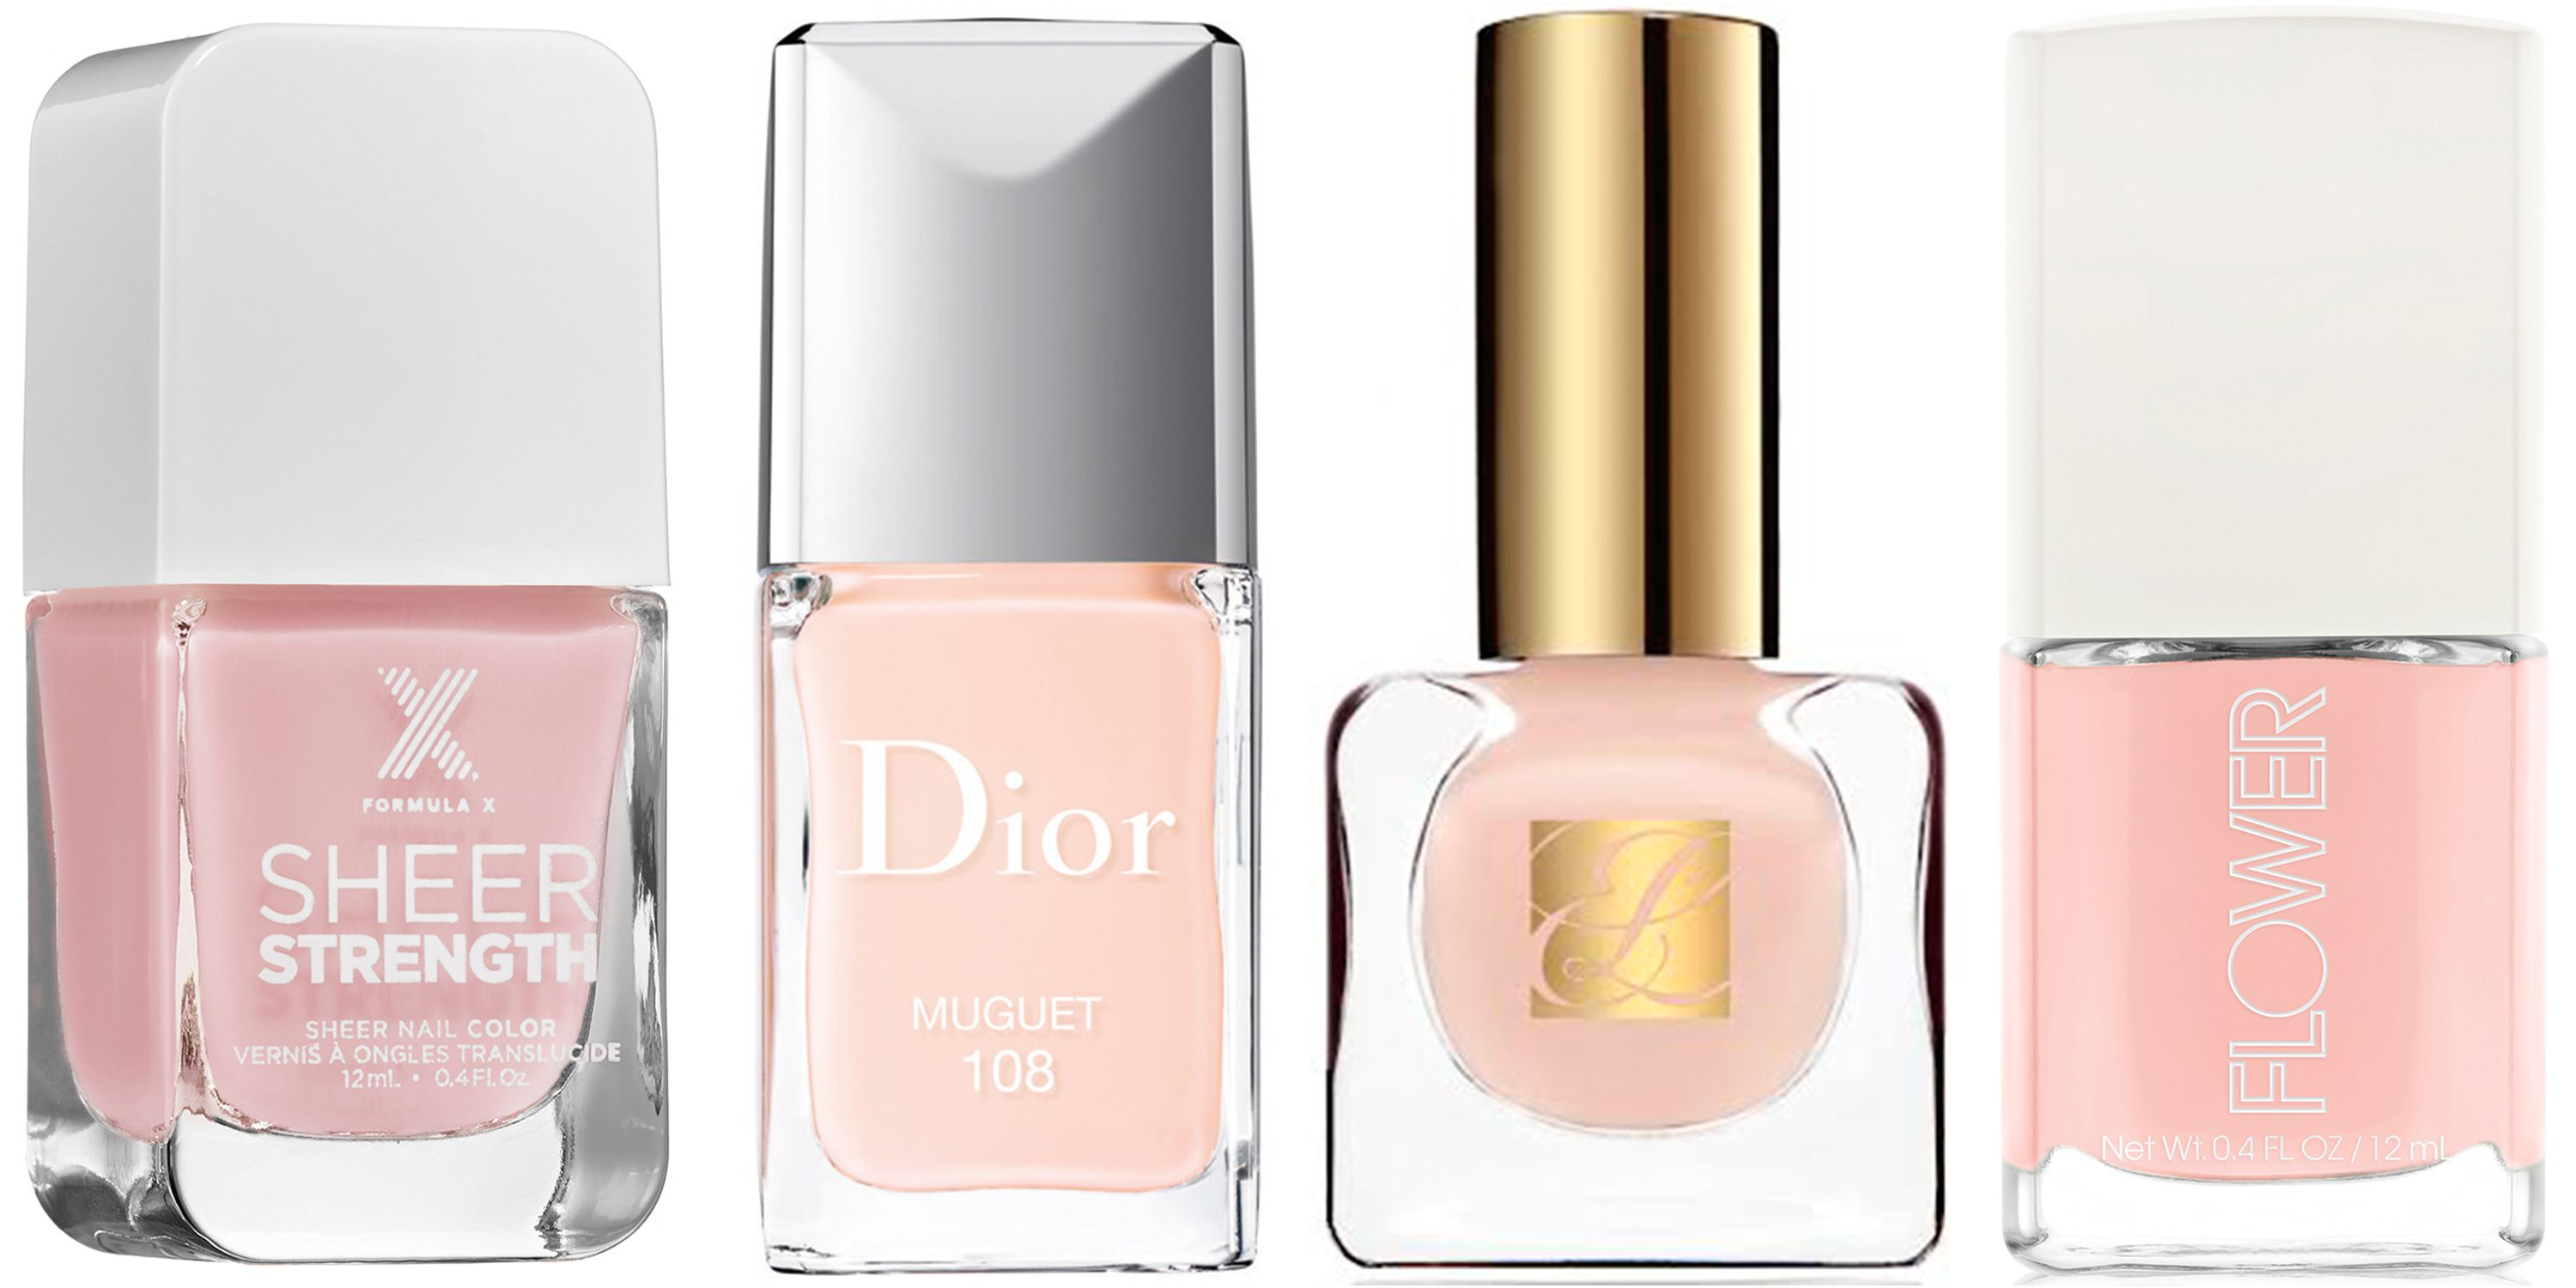 "<p><strong>Formula X </strong>Sheer Strength Nail Polish in Wondrous,$13, <a href=""http://www.sephora.com/sheer-strength-treatment-nail-polish-P393226"">sephora.com</a>; <strong>Dior </strong>Vernis in Muguet, $27, <a href=""http://www.dior.com/beauty/en_us/fragrance-beauty/makeup/nails/nail-lacquers/pr-diorvernis-y0002959-couture-color-gel-shine-long-wear-nail-lacquer.html"" target=""_blank"">dior.com</a>;  <strong>Estée Lauder </strong><span class=""redactor-invisible-space"">Pure Color Nail Lacquer in Ballerina Pink, $21, <a href=""https://www.esteelauder.com/product/631/13562/Product-Catalog/Makeup/Pure-Color/Nail-Lacquer"" target=""_blank"">esteelauder.com</a>; <strong>Flower Beauty </strong><span class=""redactor-invisible-space"">Nail Lacquer in Nail'd It, $5, <a href=""http://flowerbeauty.com/nail/detail/29/flower-naild-it-nail-lacquer/"" target=""_blank"">flowerbeauty.com</a>.</span></span></p>"